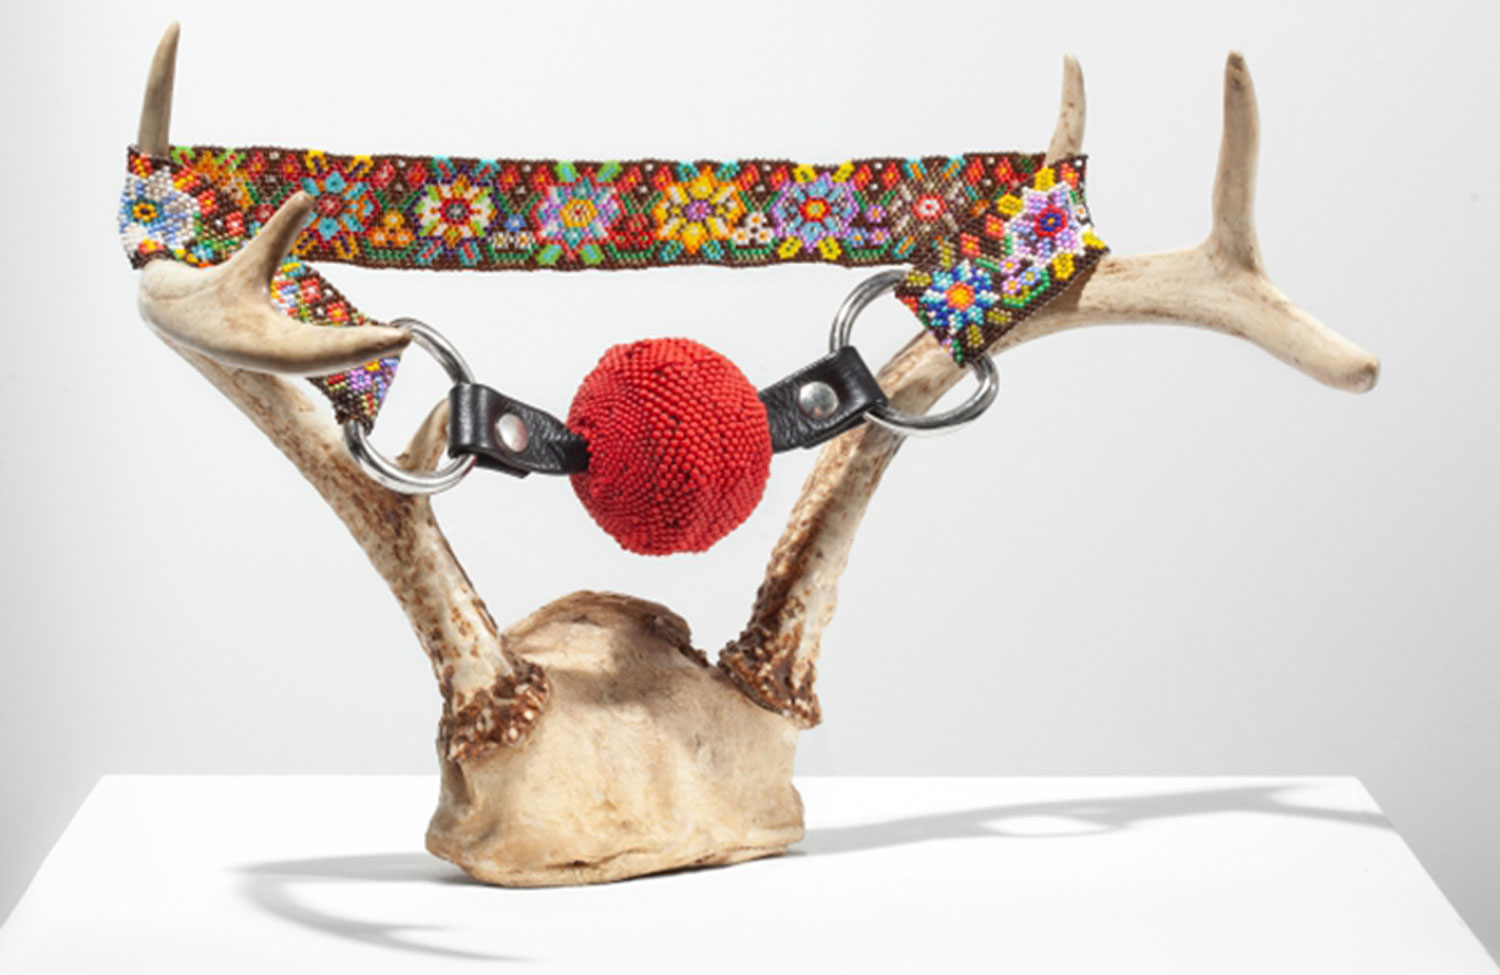 La Guilde presents Beading Now!, a contemporary beading exhibition, from May 16 to July 21, 2019